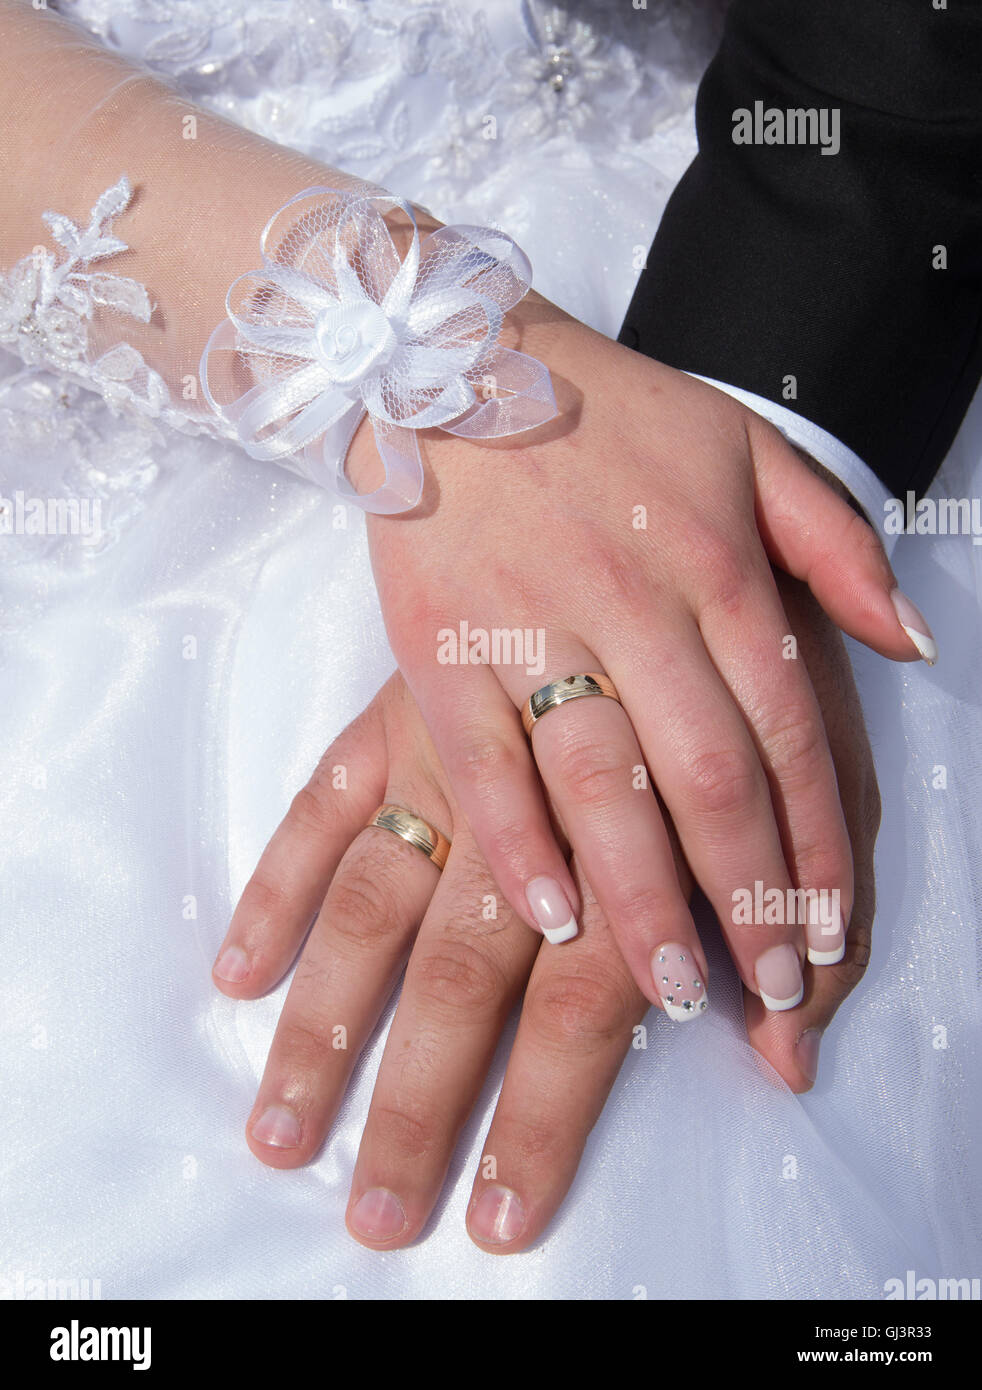 Woman Hand Hands Ring Greeting Stock Photos & Woman Hand Hands Ring ...